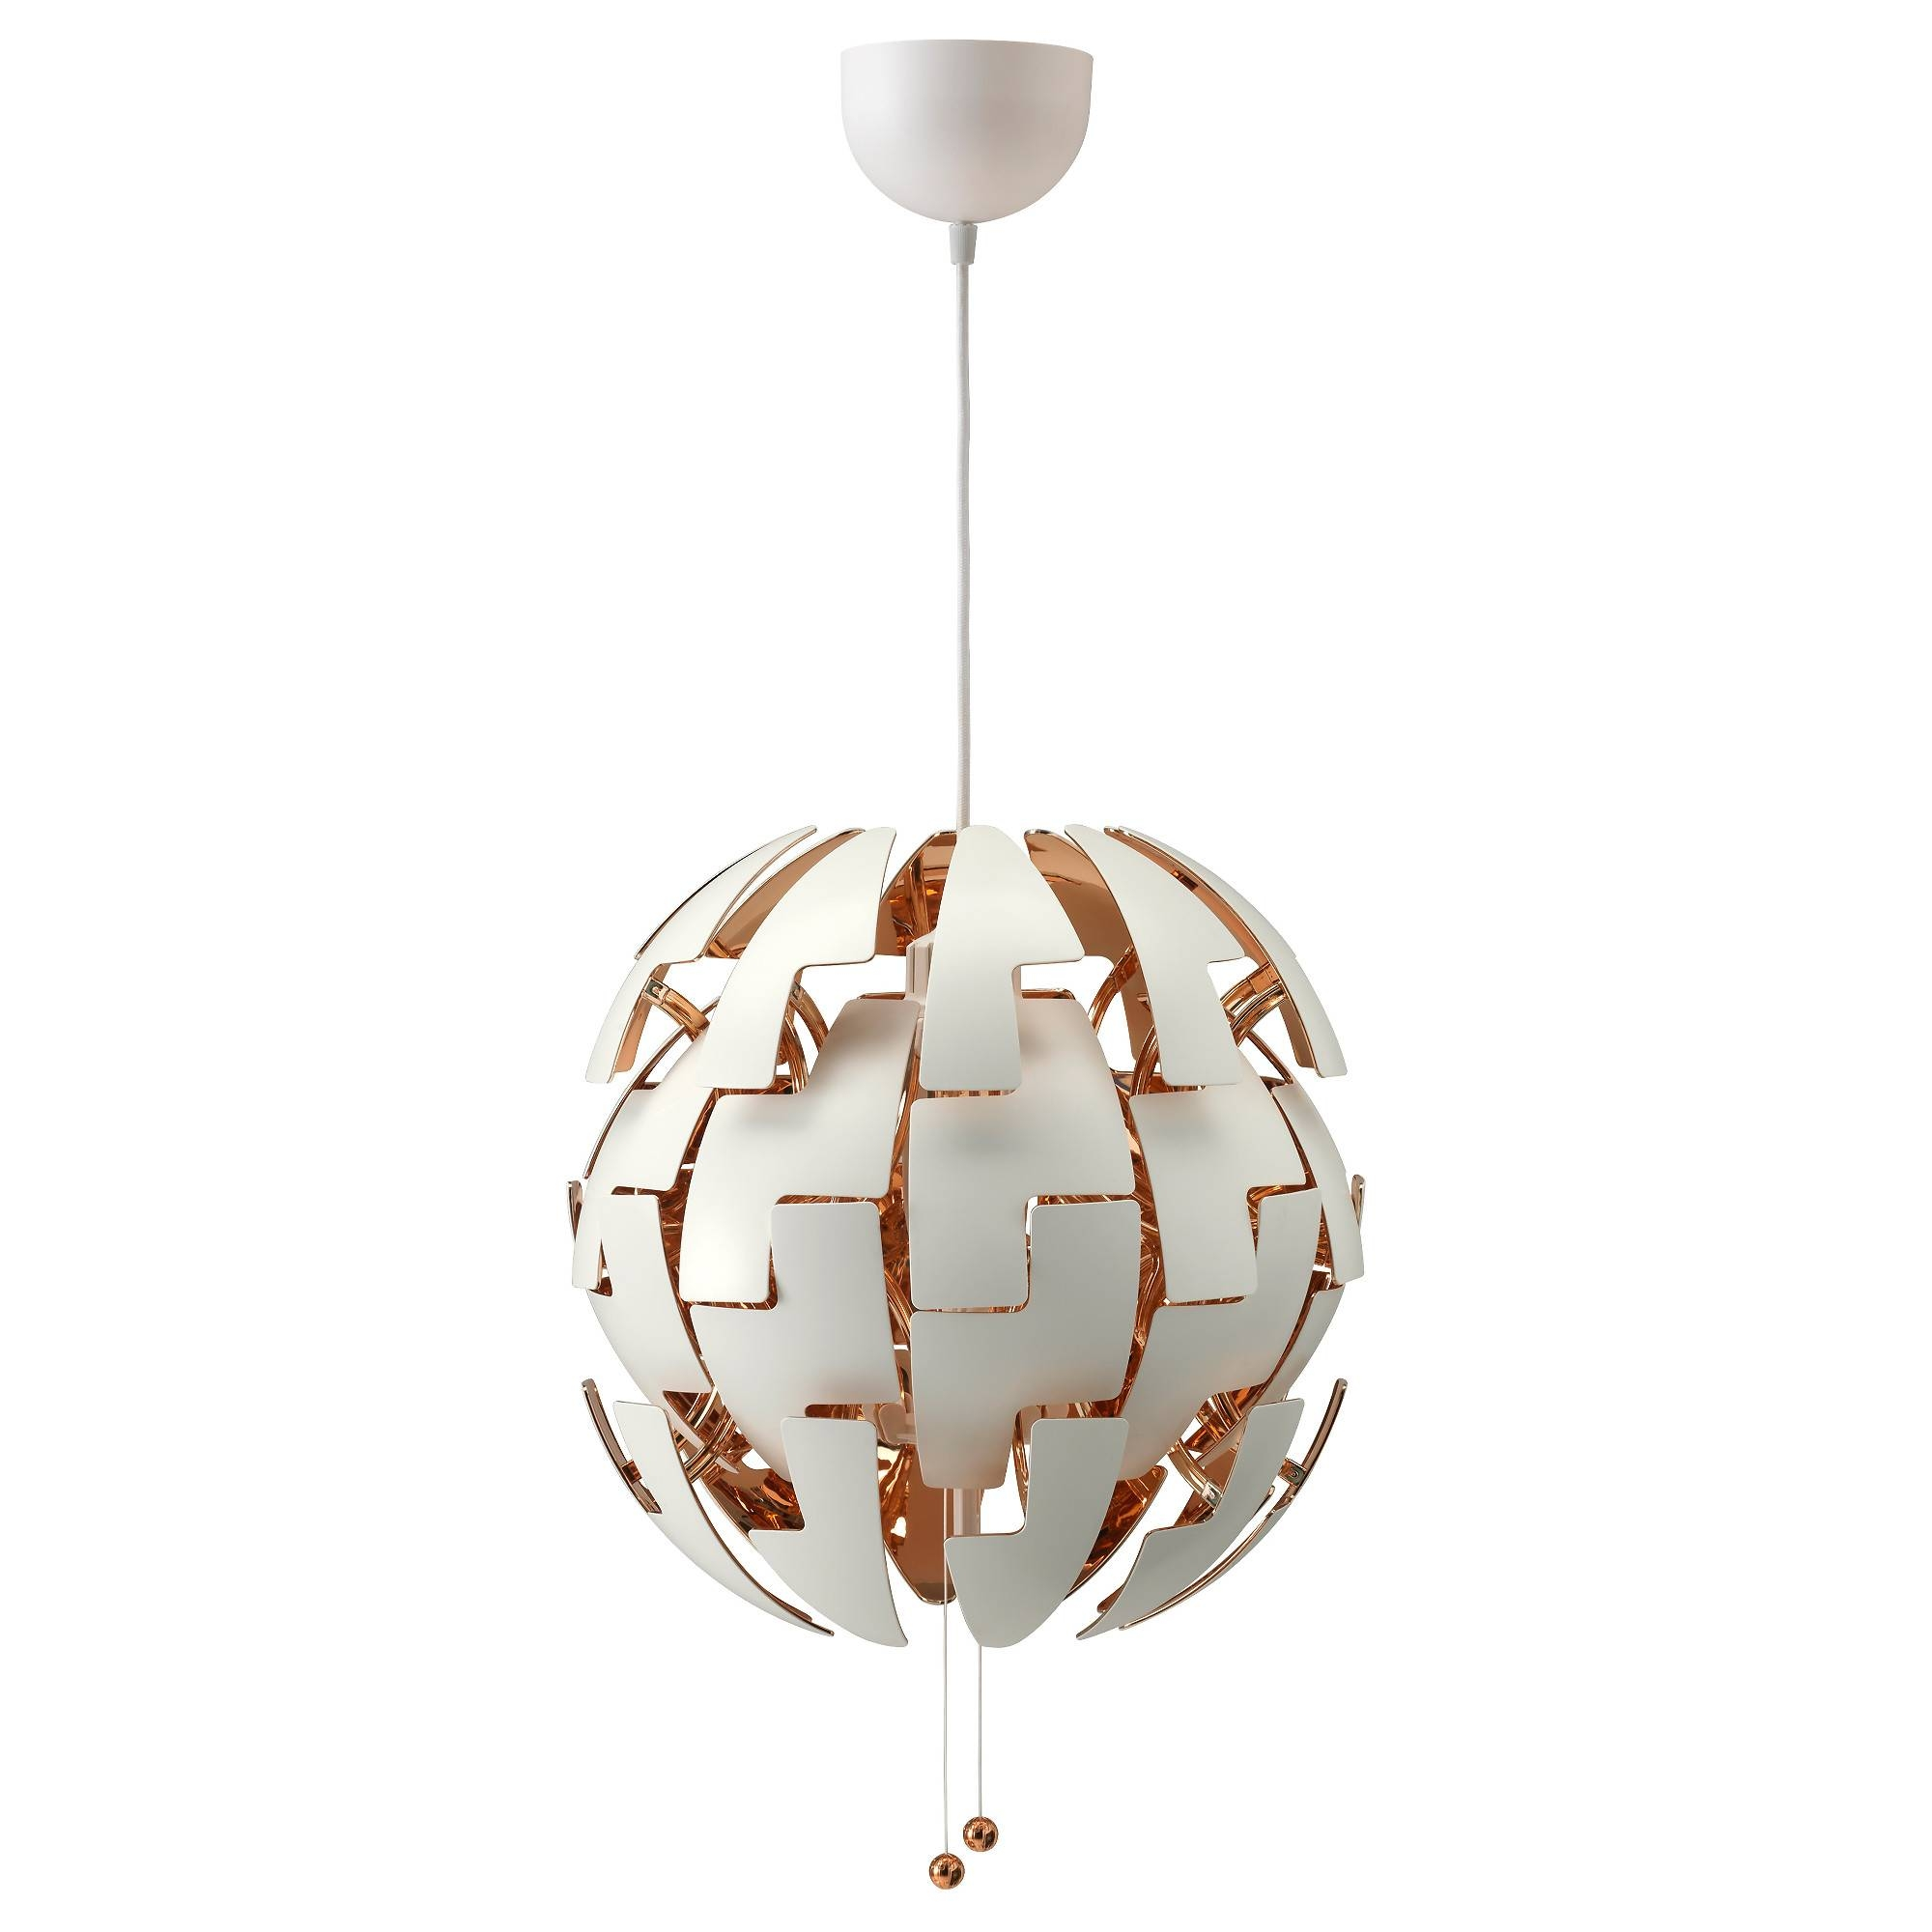 Ikea Ps 2014 Pendant Lamp - White/copper Color - Ikea inside Ikea Pendant Lights (Image 8 of 15)